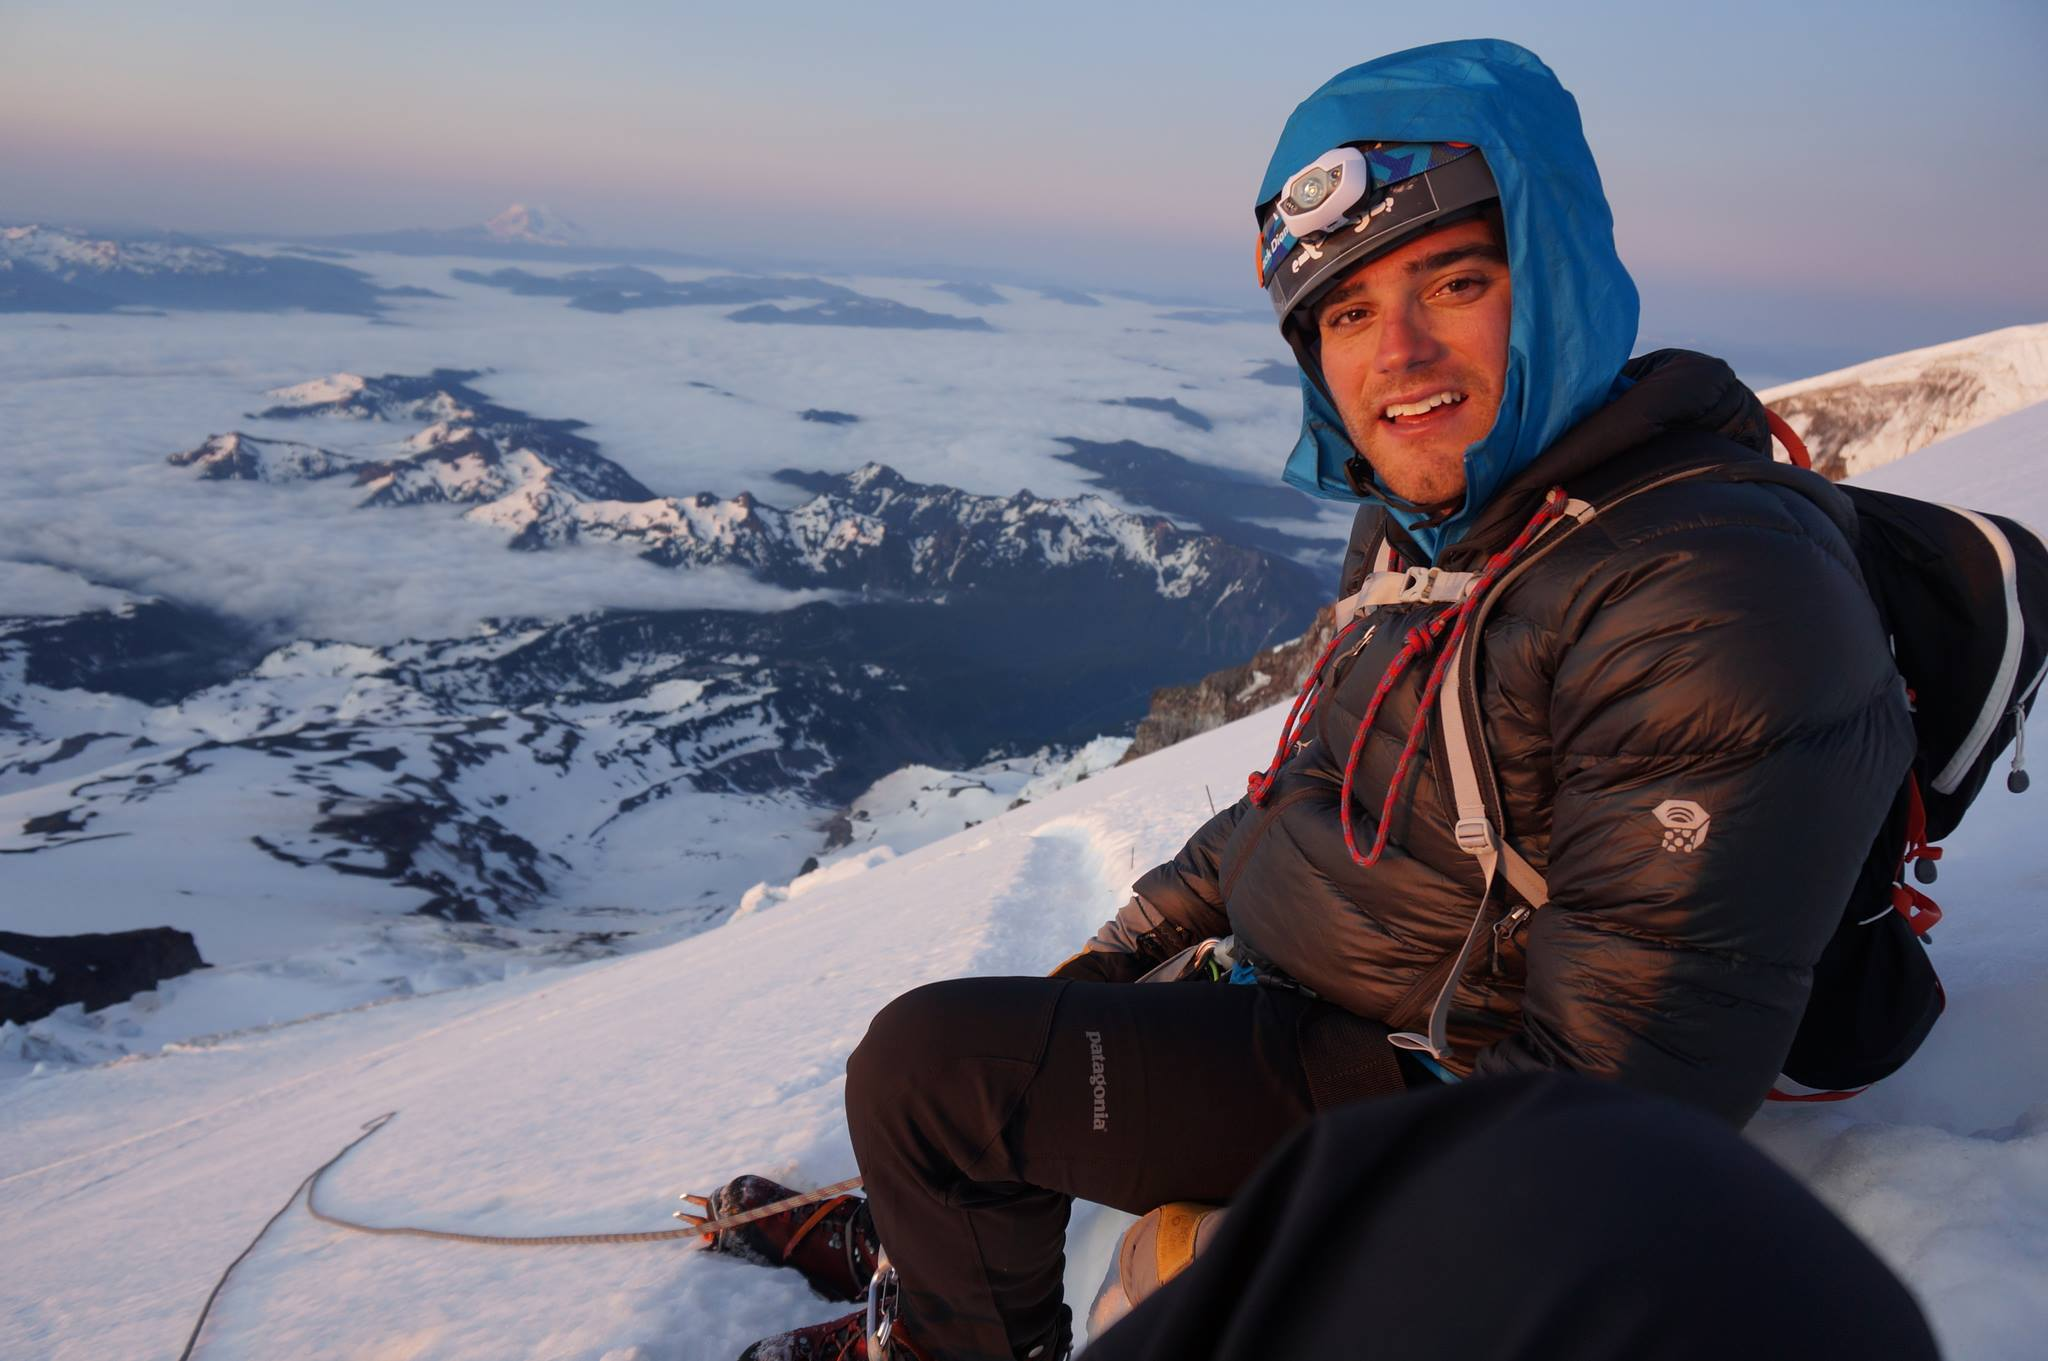 Andrew at the summit of Mt. Rainier ( 14,410') in 2013.